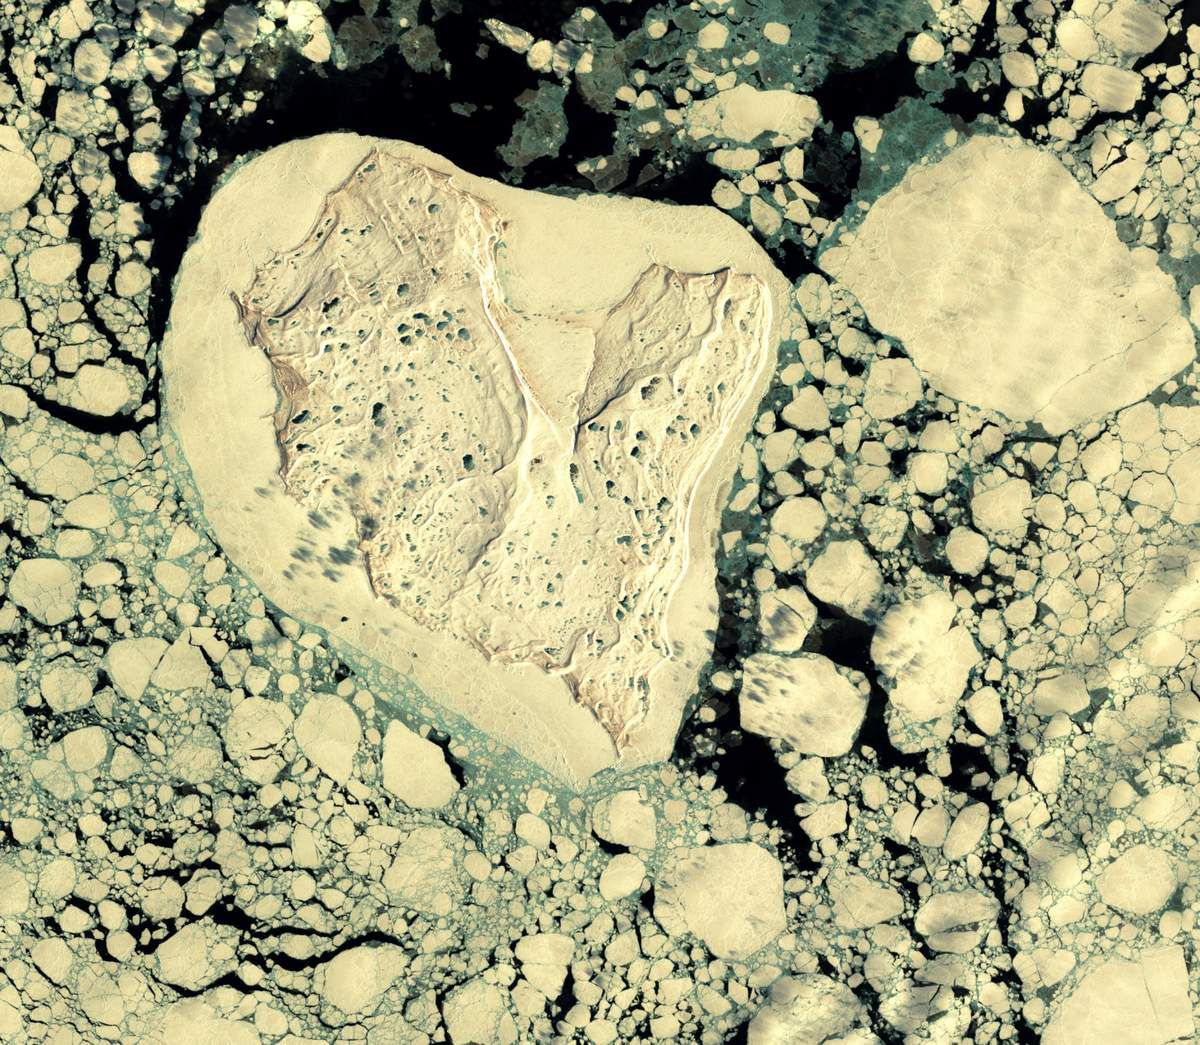 Saint-Valentin - coeur - île en forme de coeur - heart shape seen from space - satellite - glace - island - amoureux - satellite d'observation